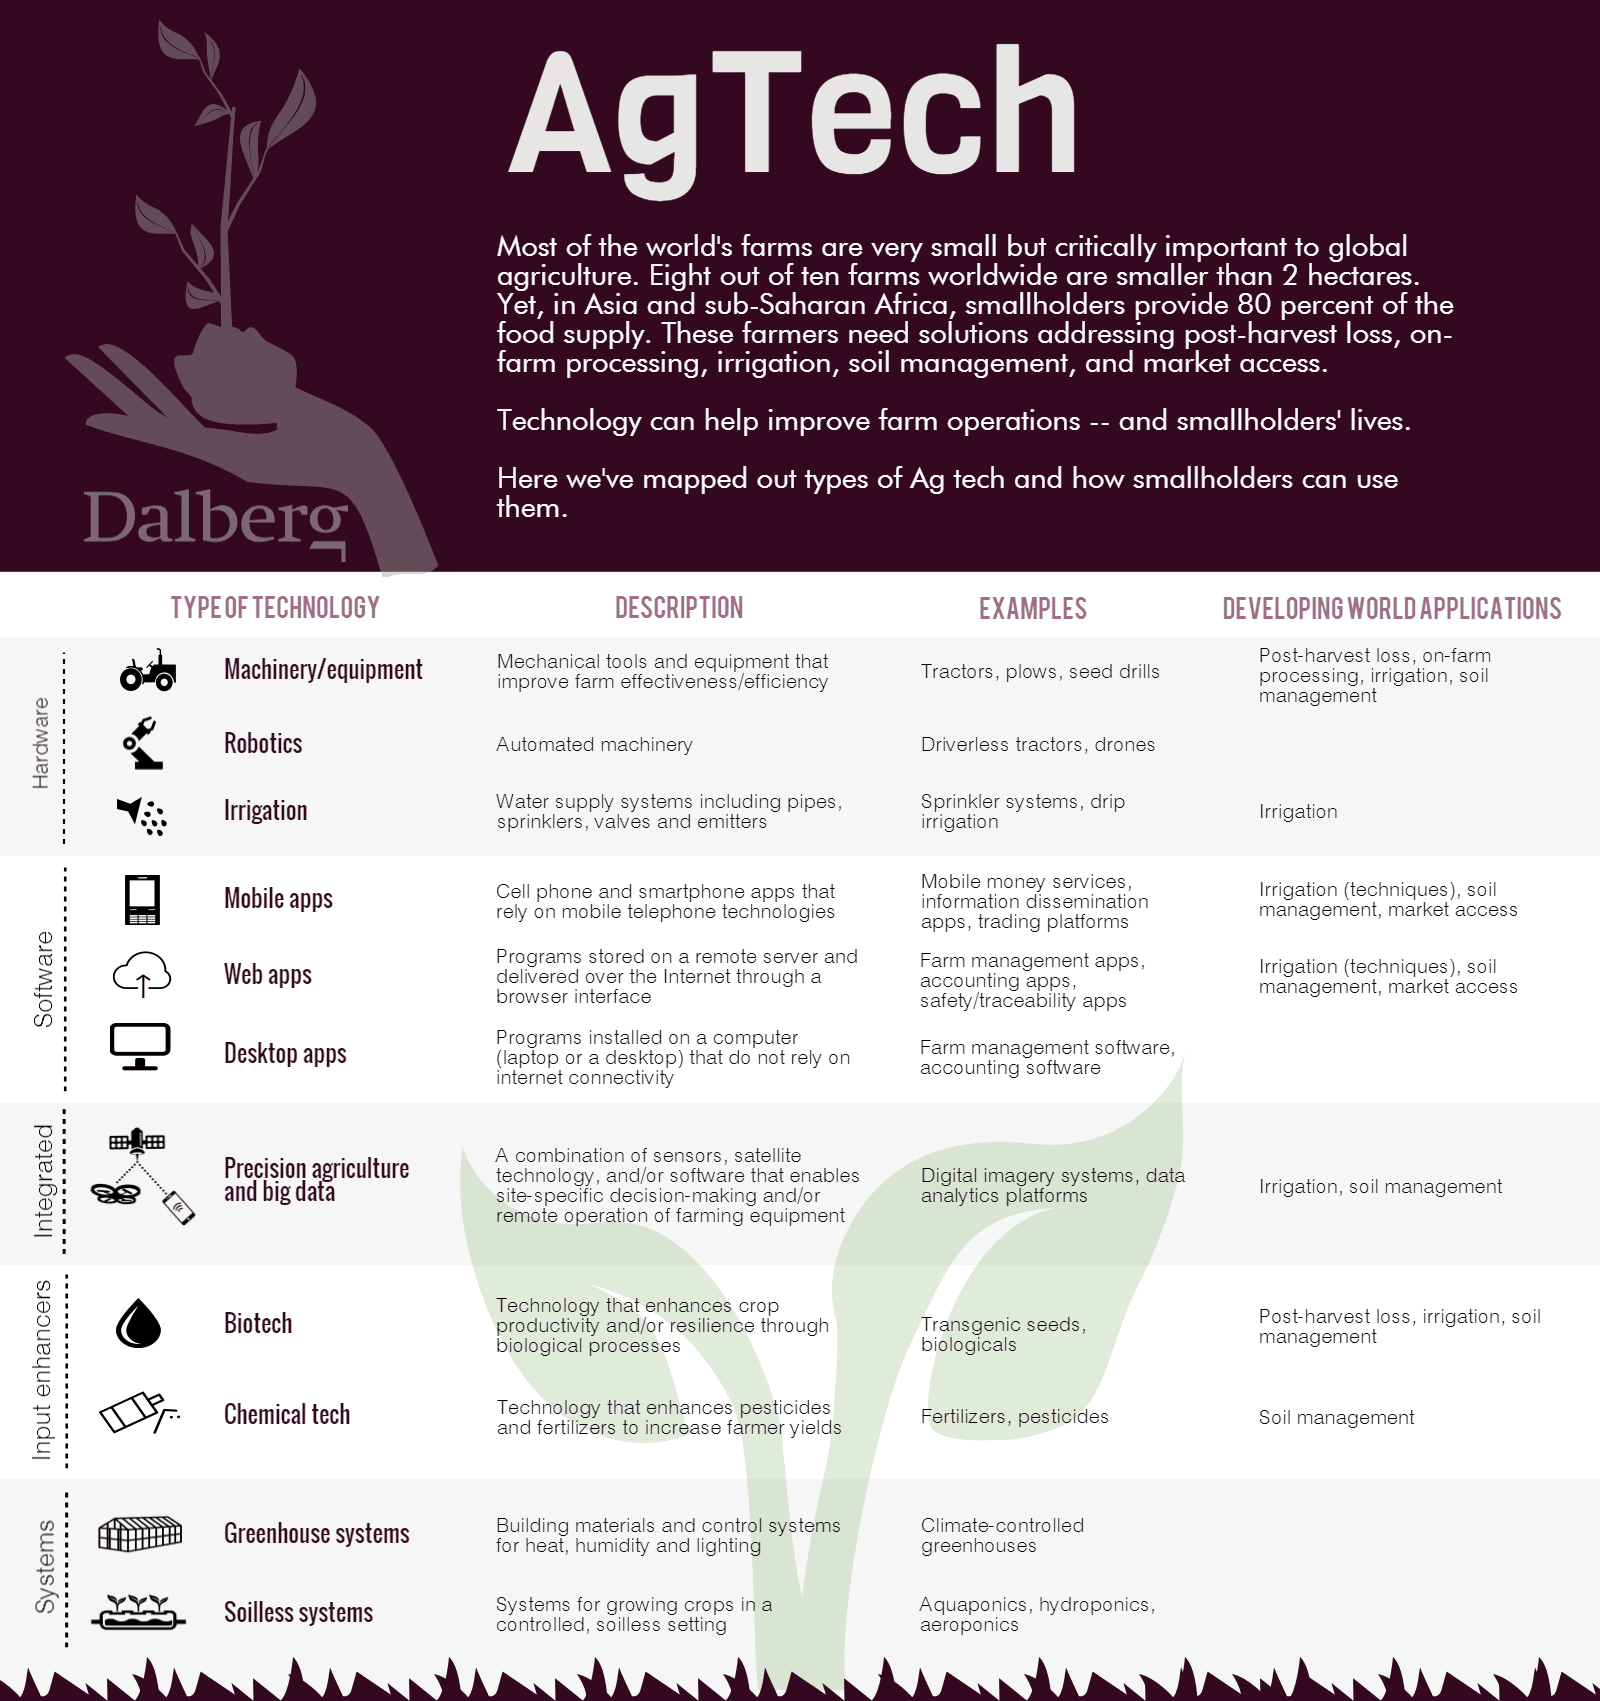 The AgTech Pedestal Problem: How to Bring Innovation Down to Earth